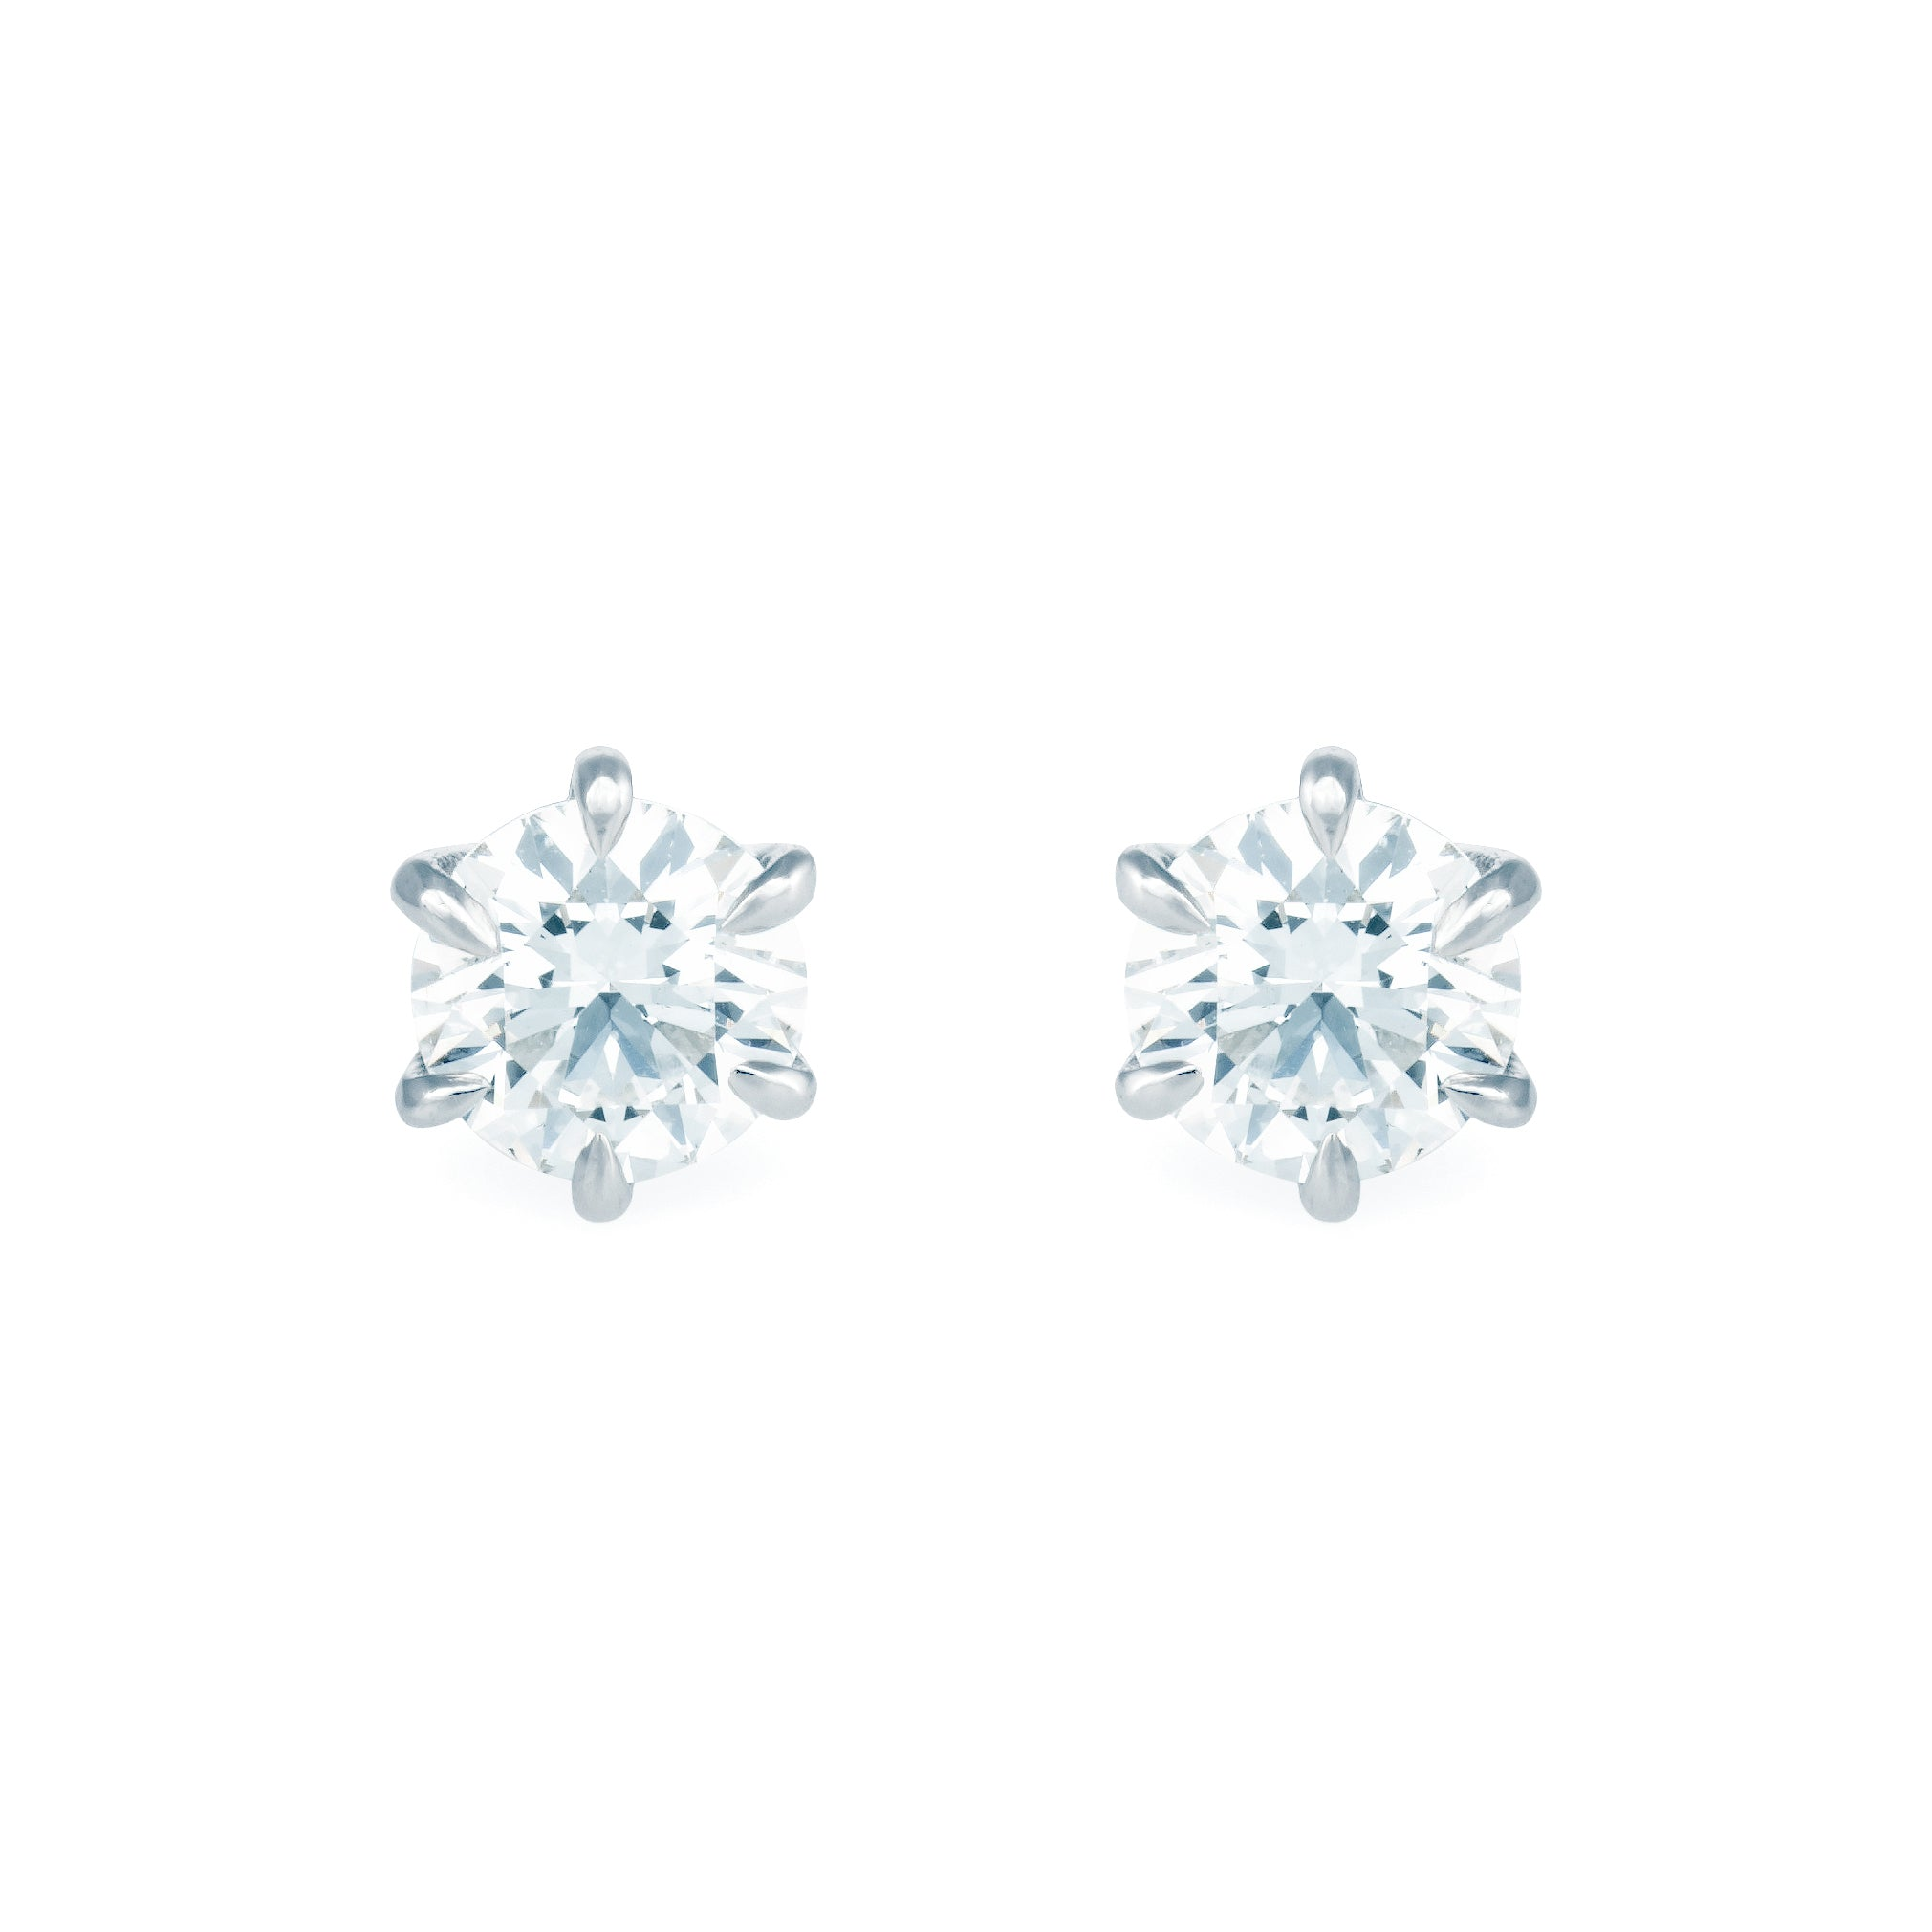 diamond from solitaire earrings london jewellers heming jewellery product